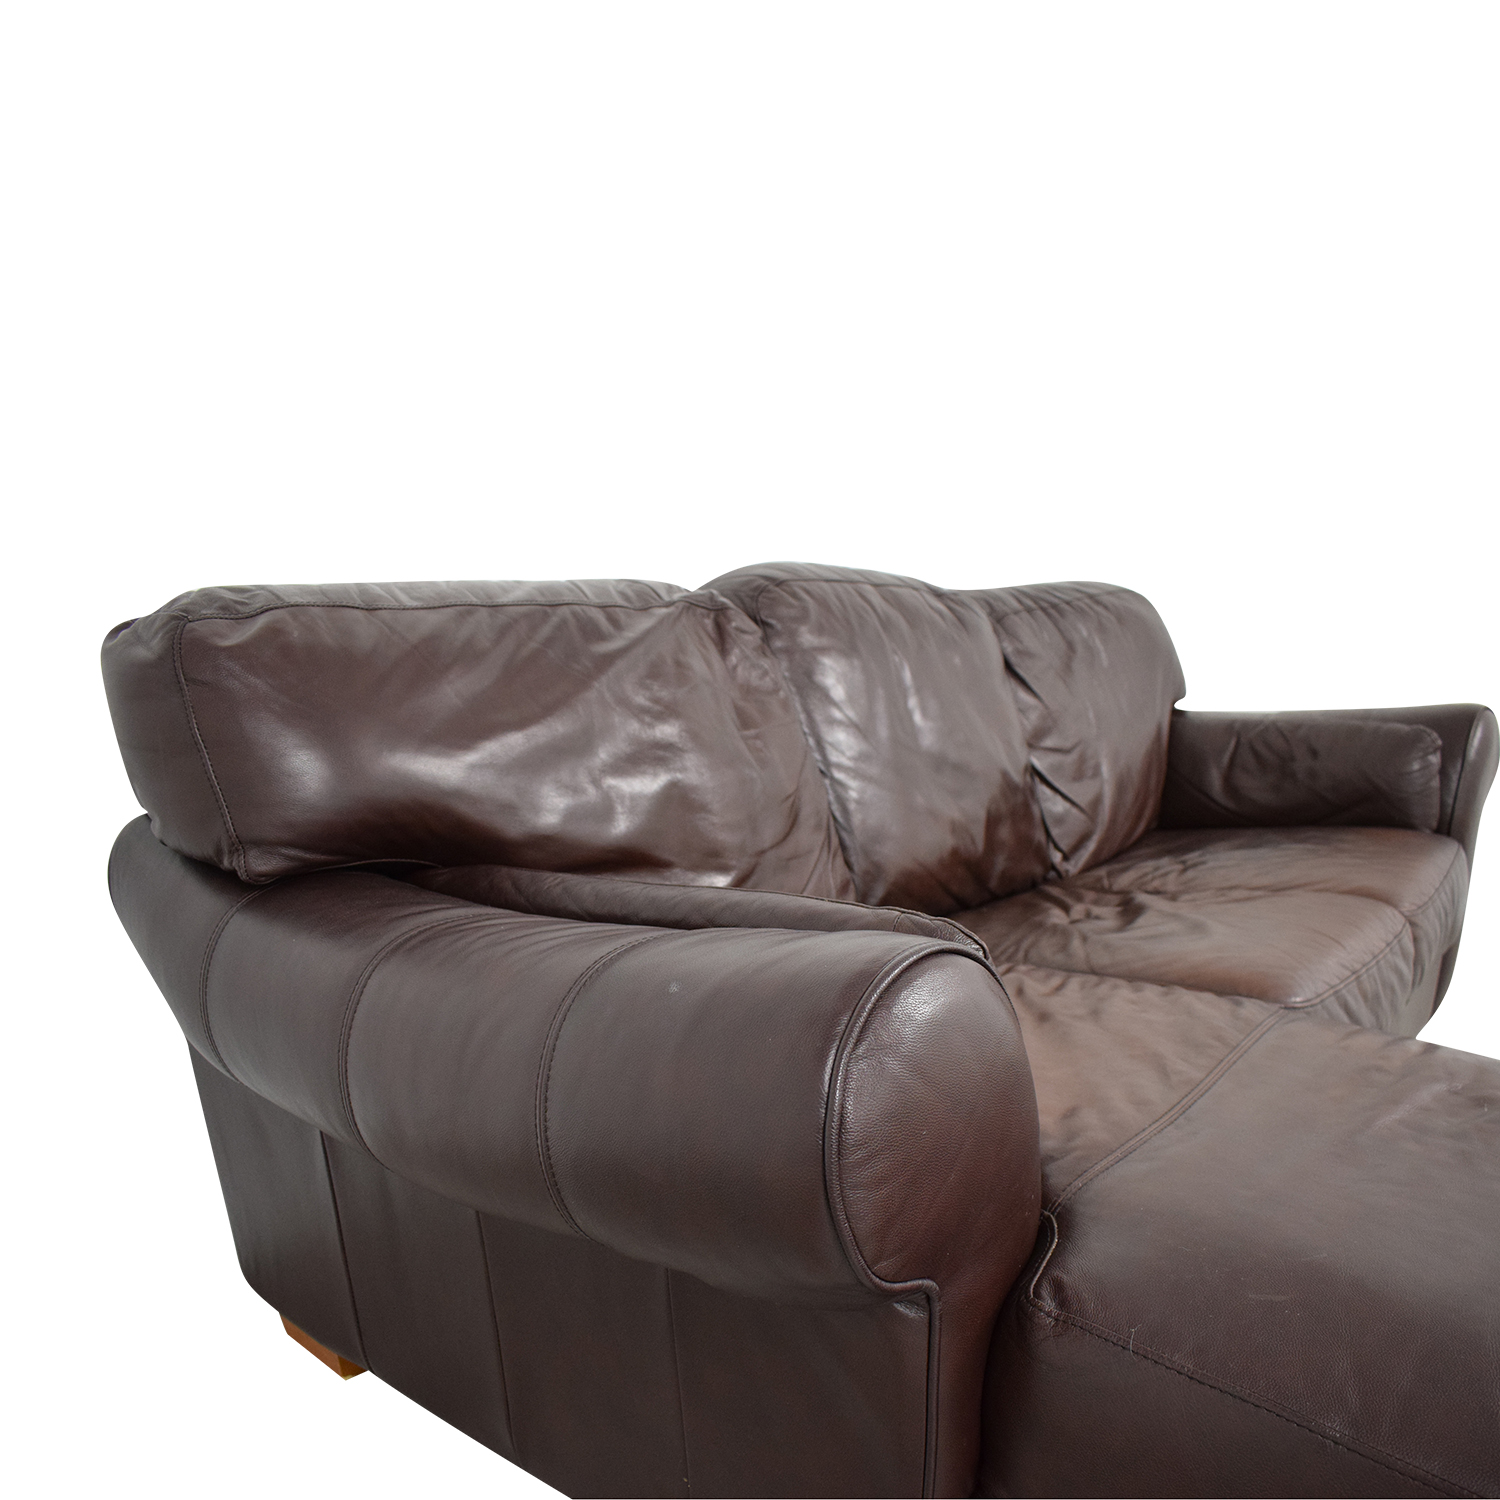 Chateau d'Ax Cindy Crawford Chaise Sectional Sofa pa